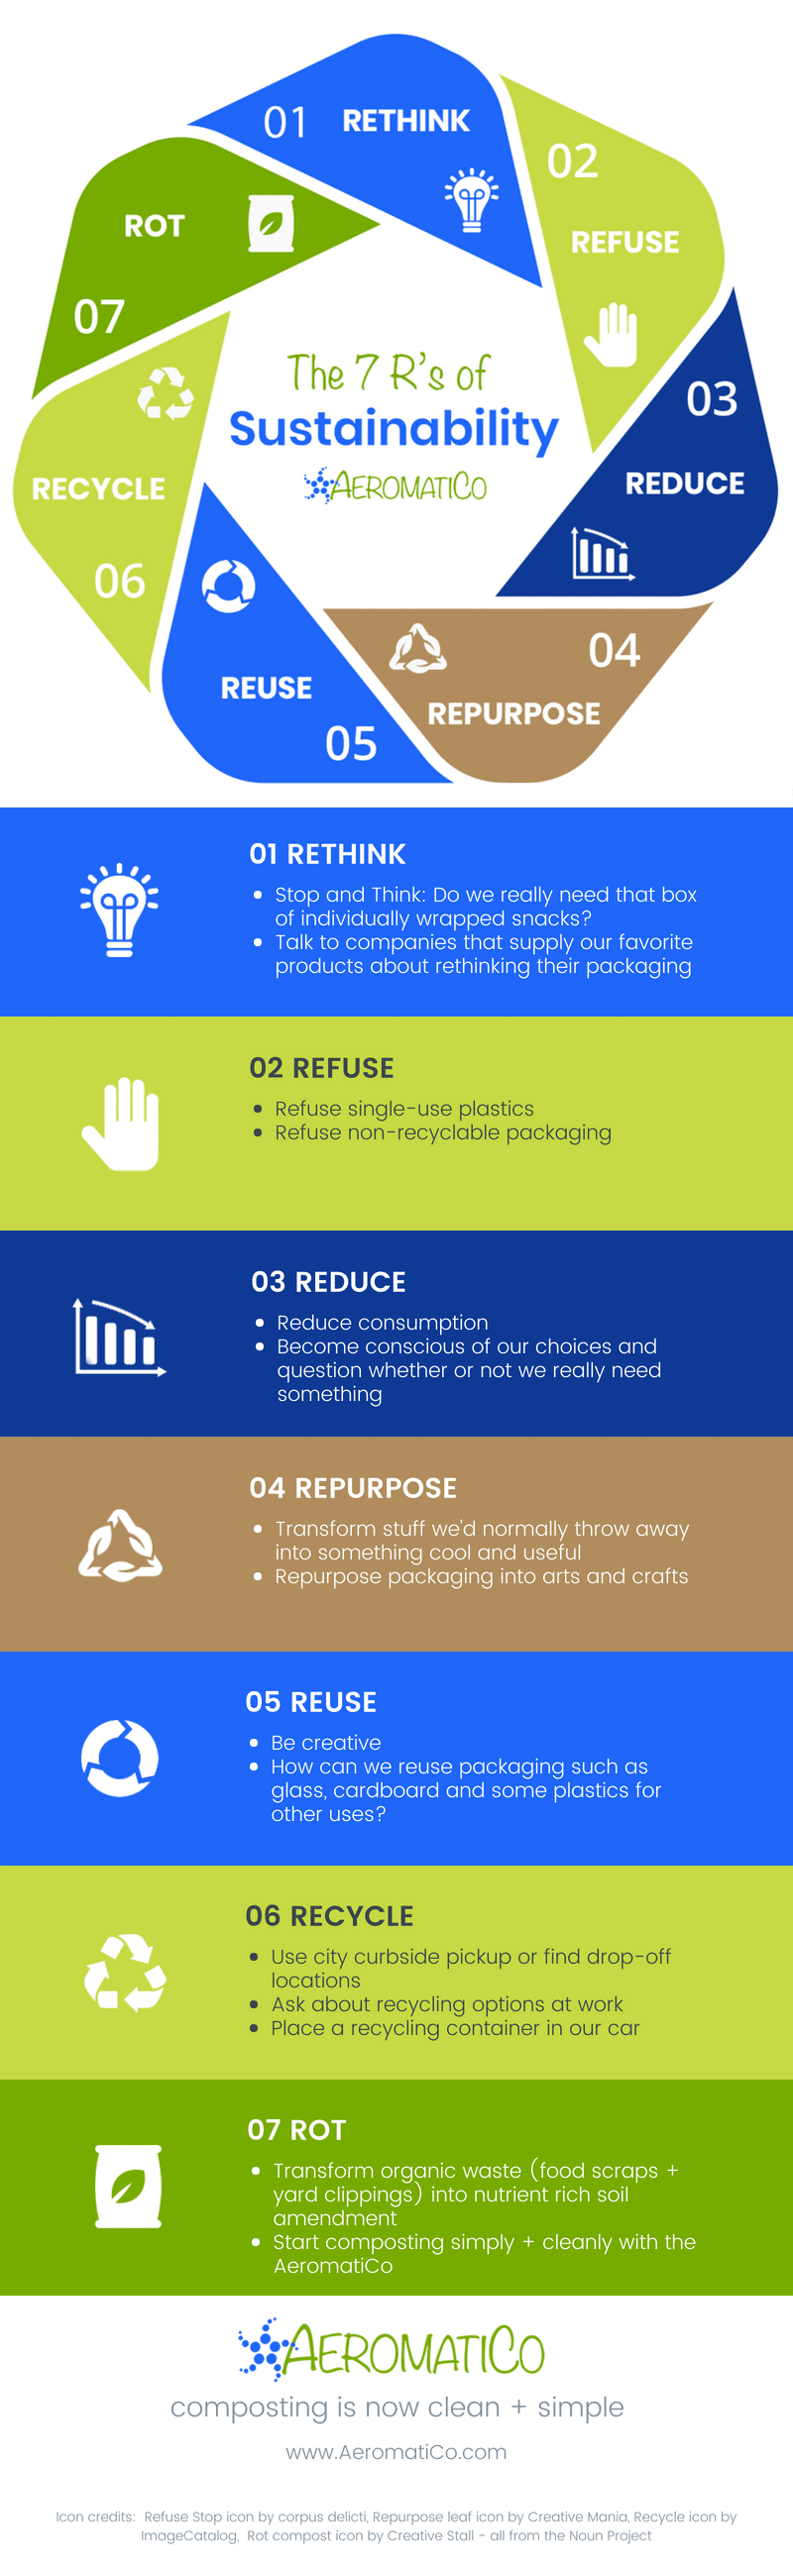 The 7 R's of Sustainability: Rethink, Refuse, Reduce, Repurpose, Reuse, Recycle and Rot. Learn ways to incorporate all 7 R's of Sustainability into your everyday life. By the people who brought you AeromatiCo, the first patent-pending, fully automatic compost bin.